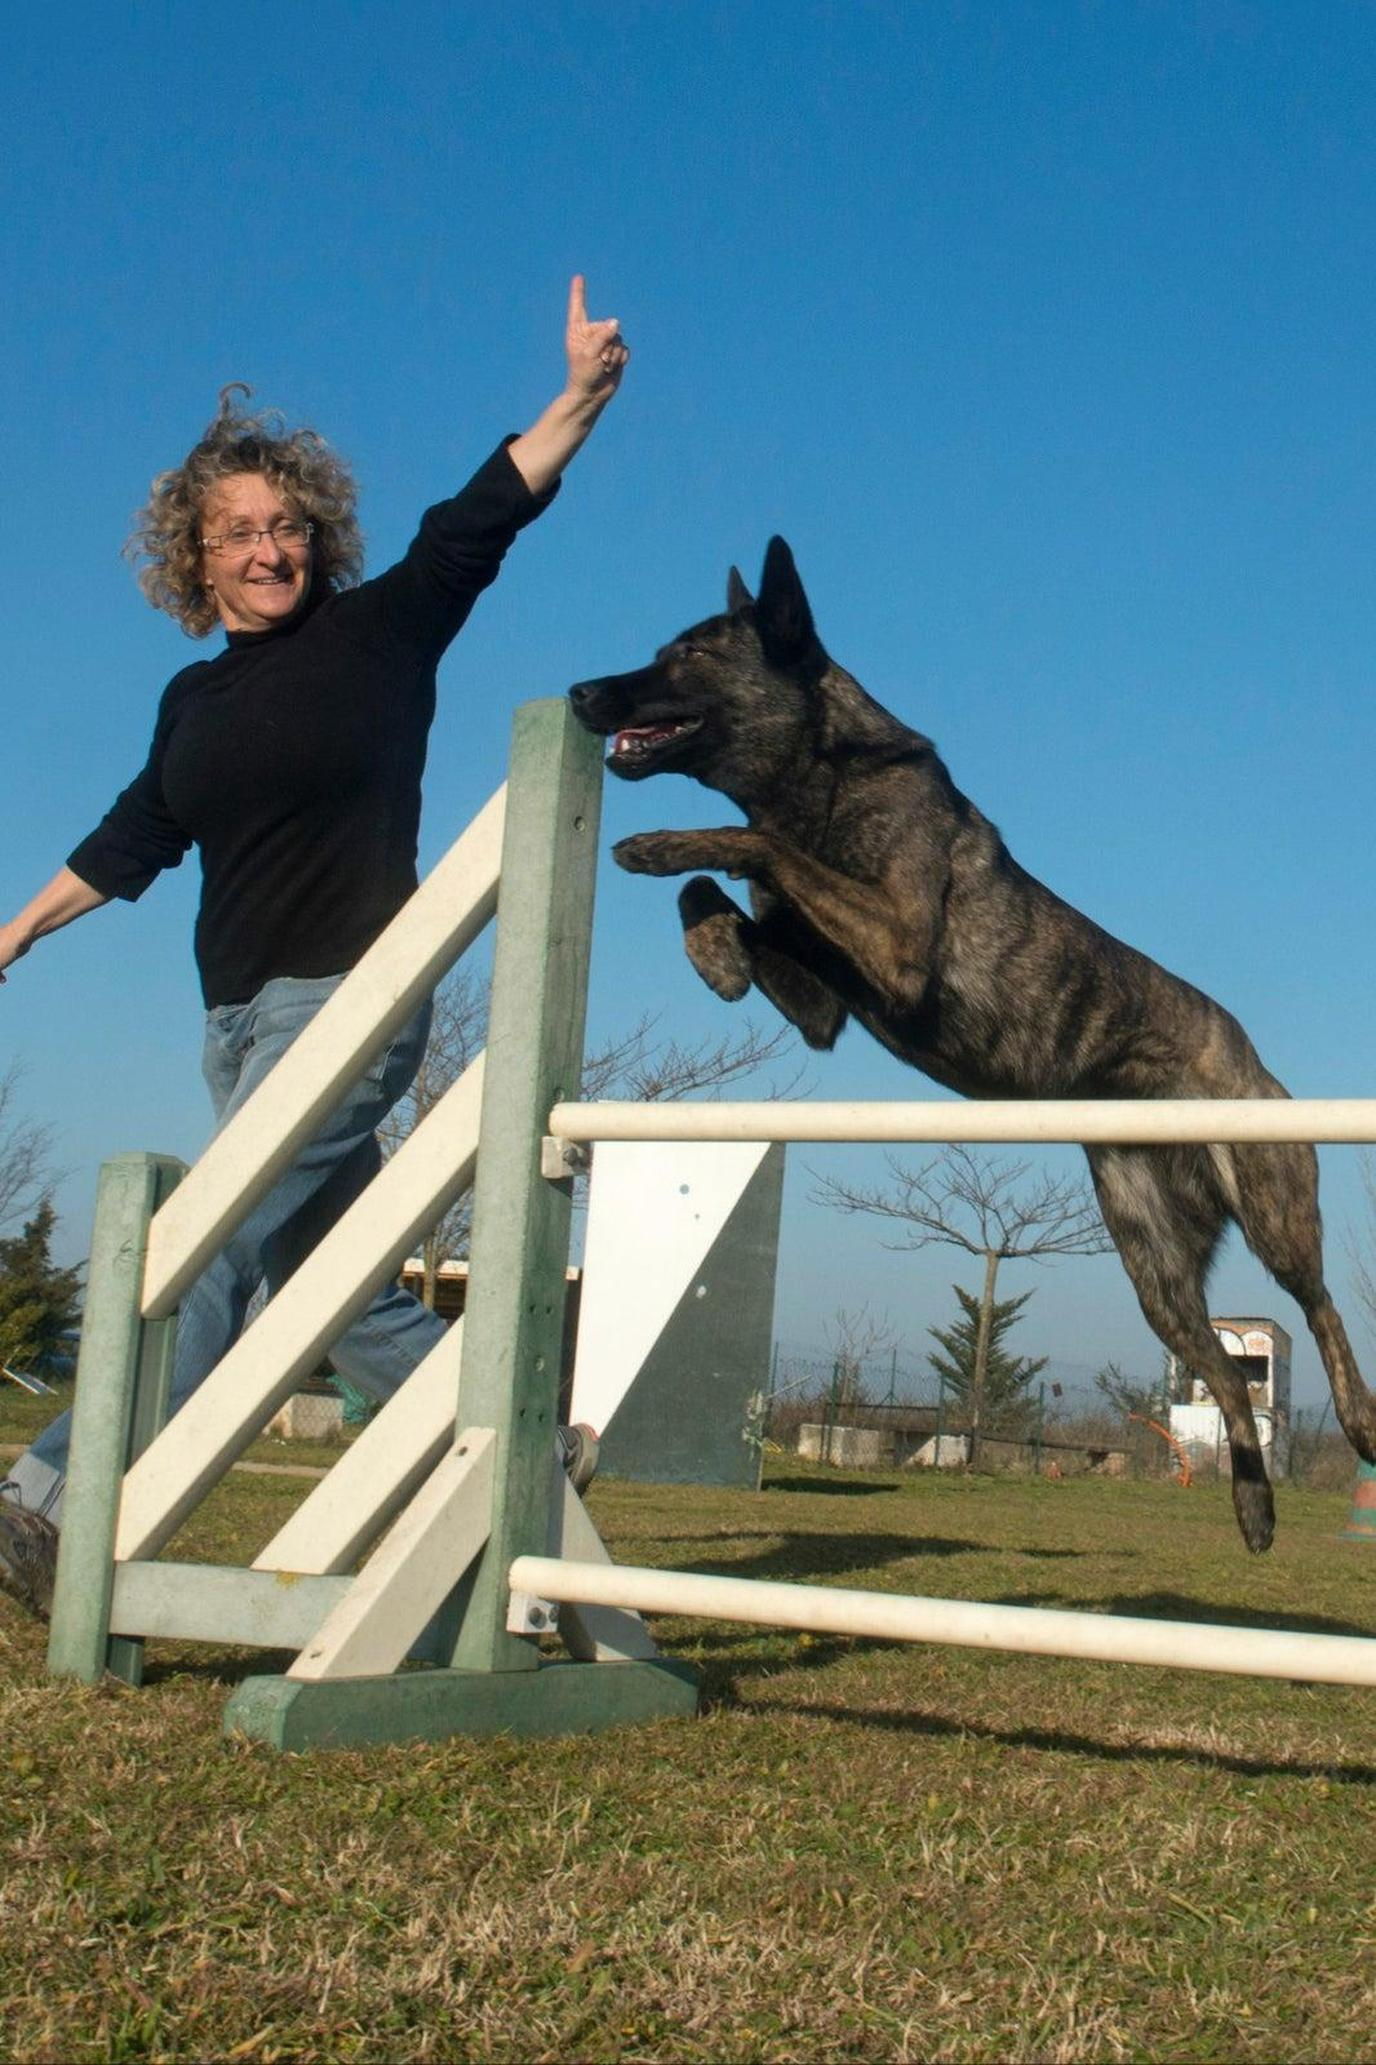 A Black Dog Jumps Over a White Agility Fence During a Pet-Friendly Airbnb Experience in Canada.